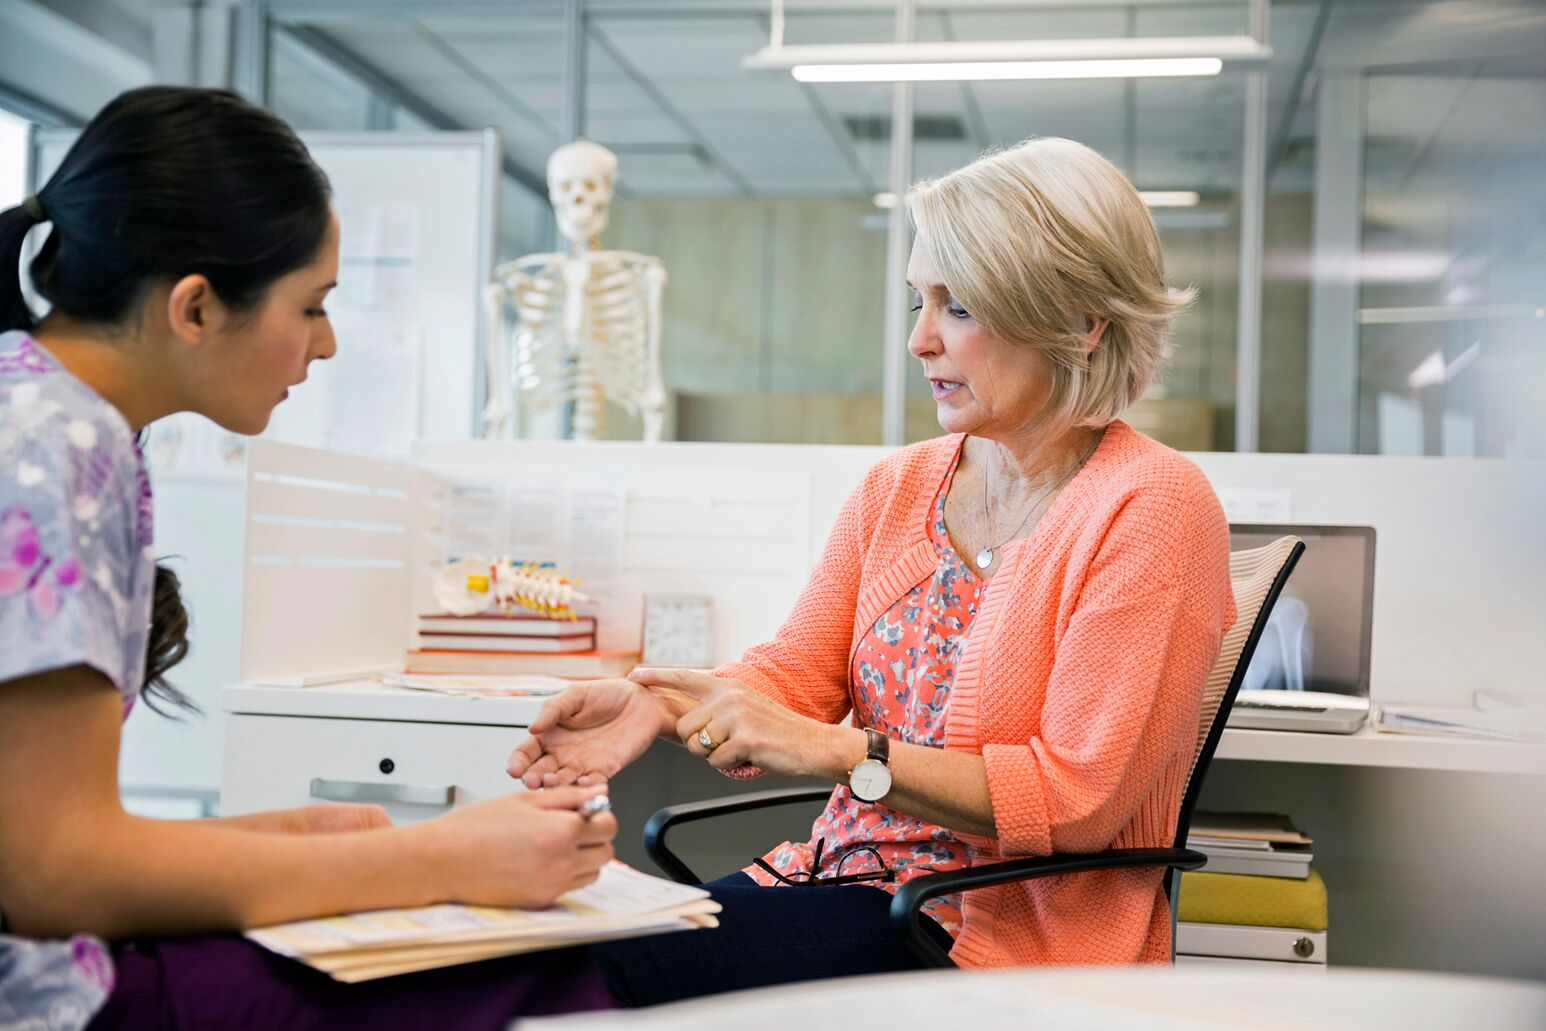 An elderly woman shows a female nurse her wrist pain. Ashley Burlage, MD, says that technology  is not the root of the musculoskeletal condition, but it can flare symptoms.